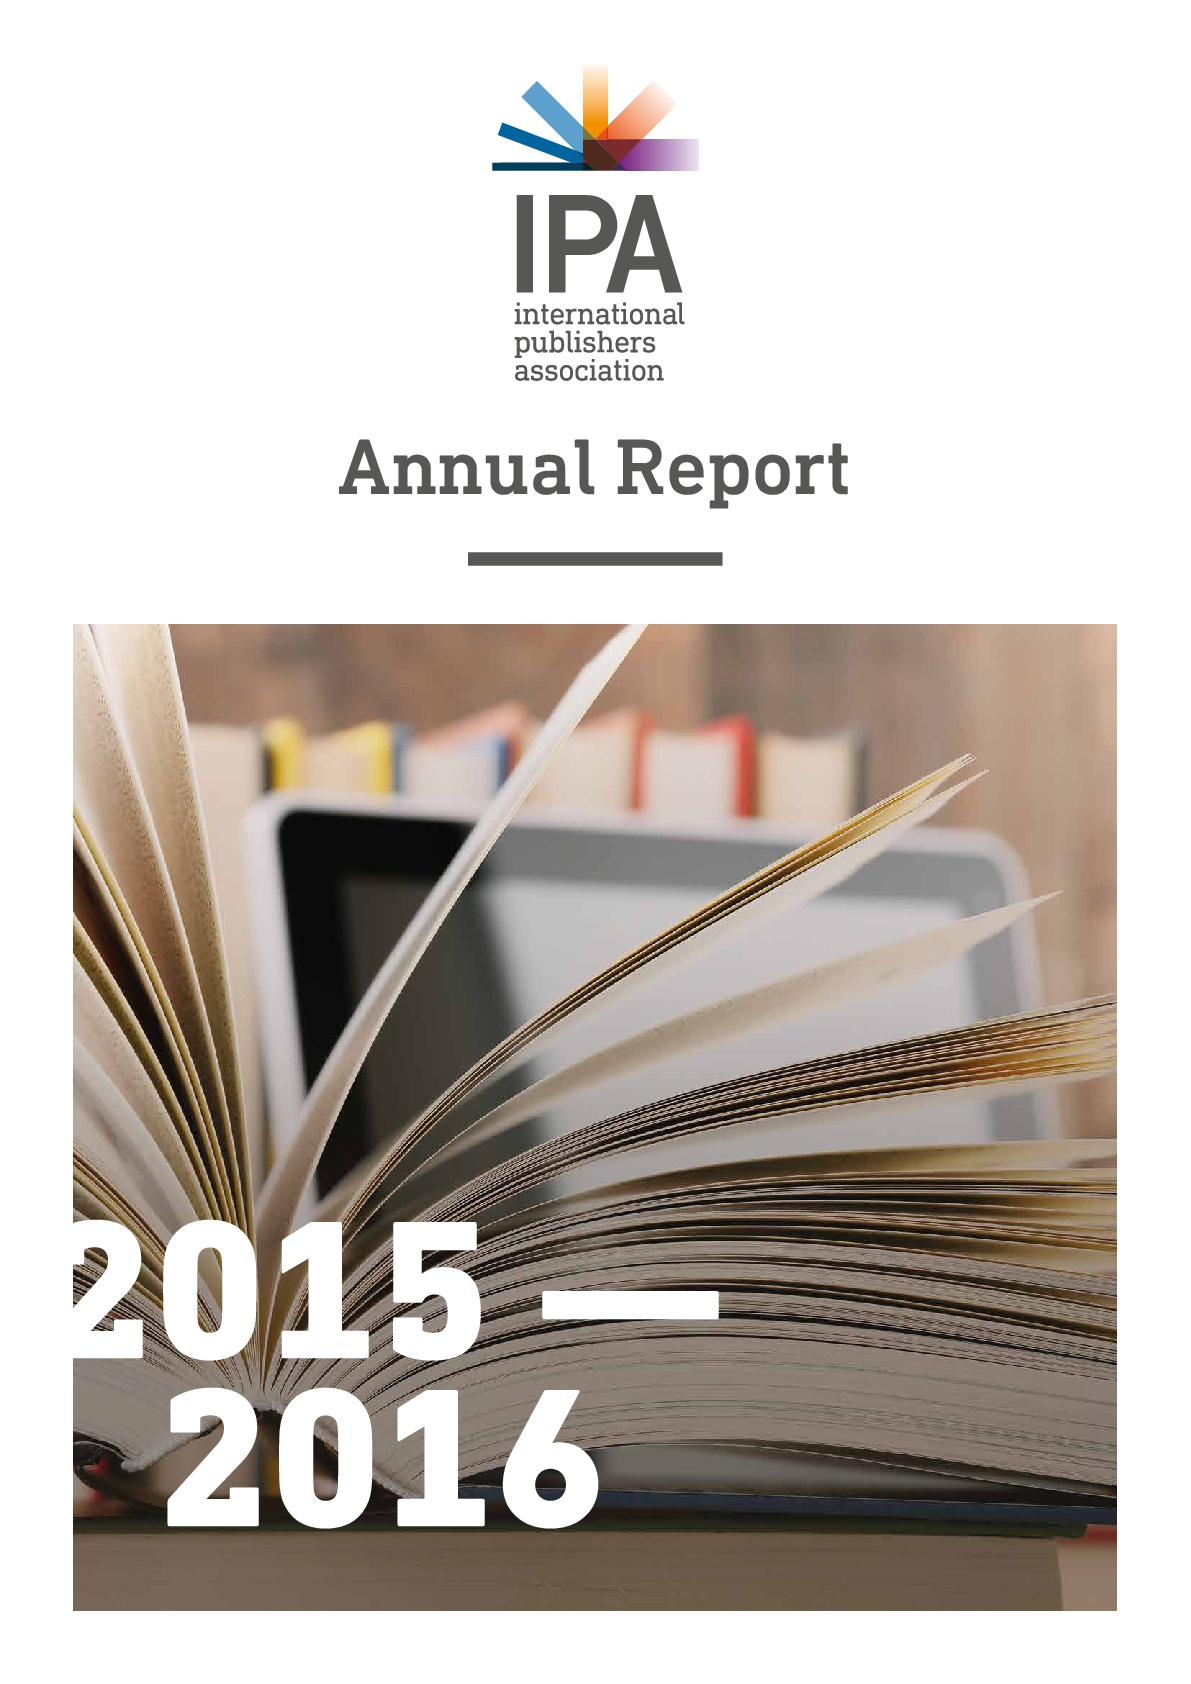 IPA Annual Report 2015-2016